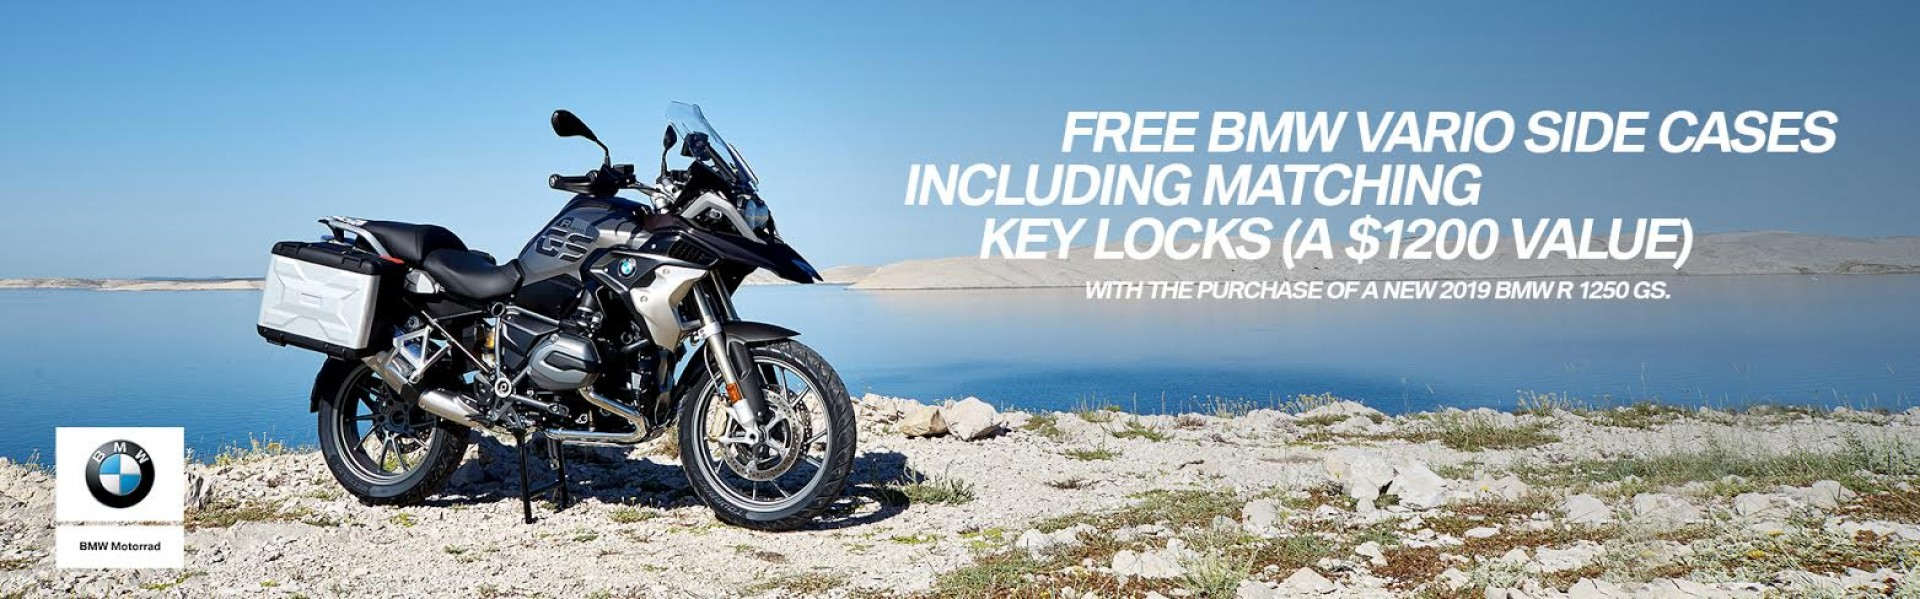 Free Bmw Vario Side Cases Including Matching Key Locks w/ purchase of new 2019 BMW R 1250 GS